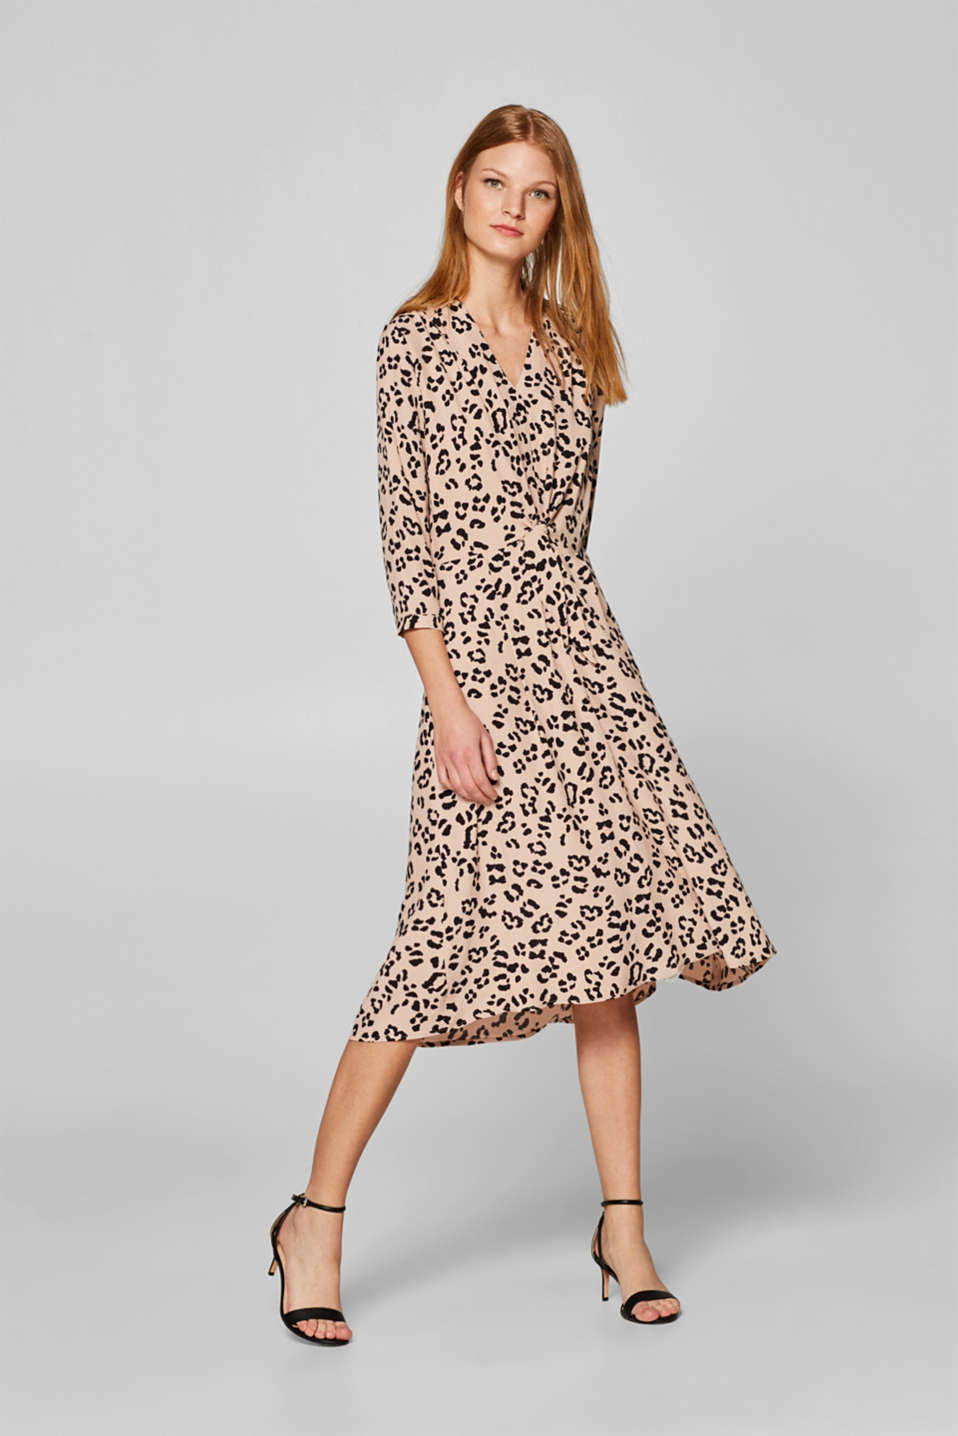 Esprit - Leopard print dress with knot details